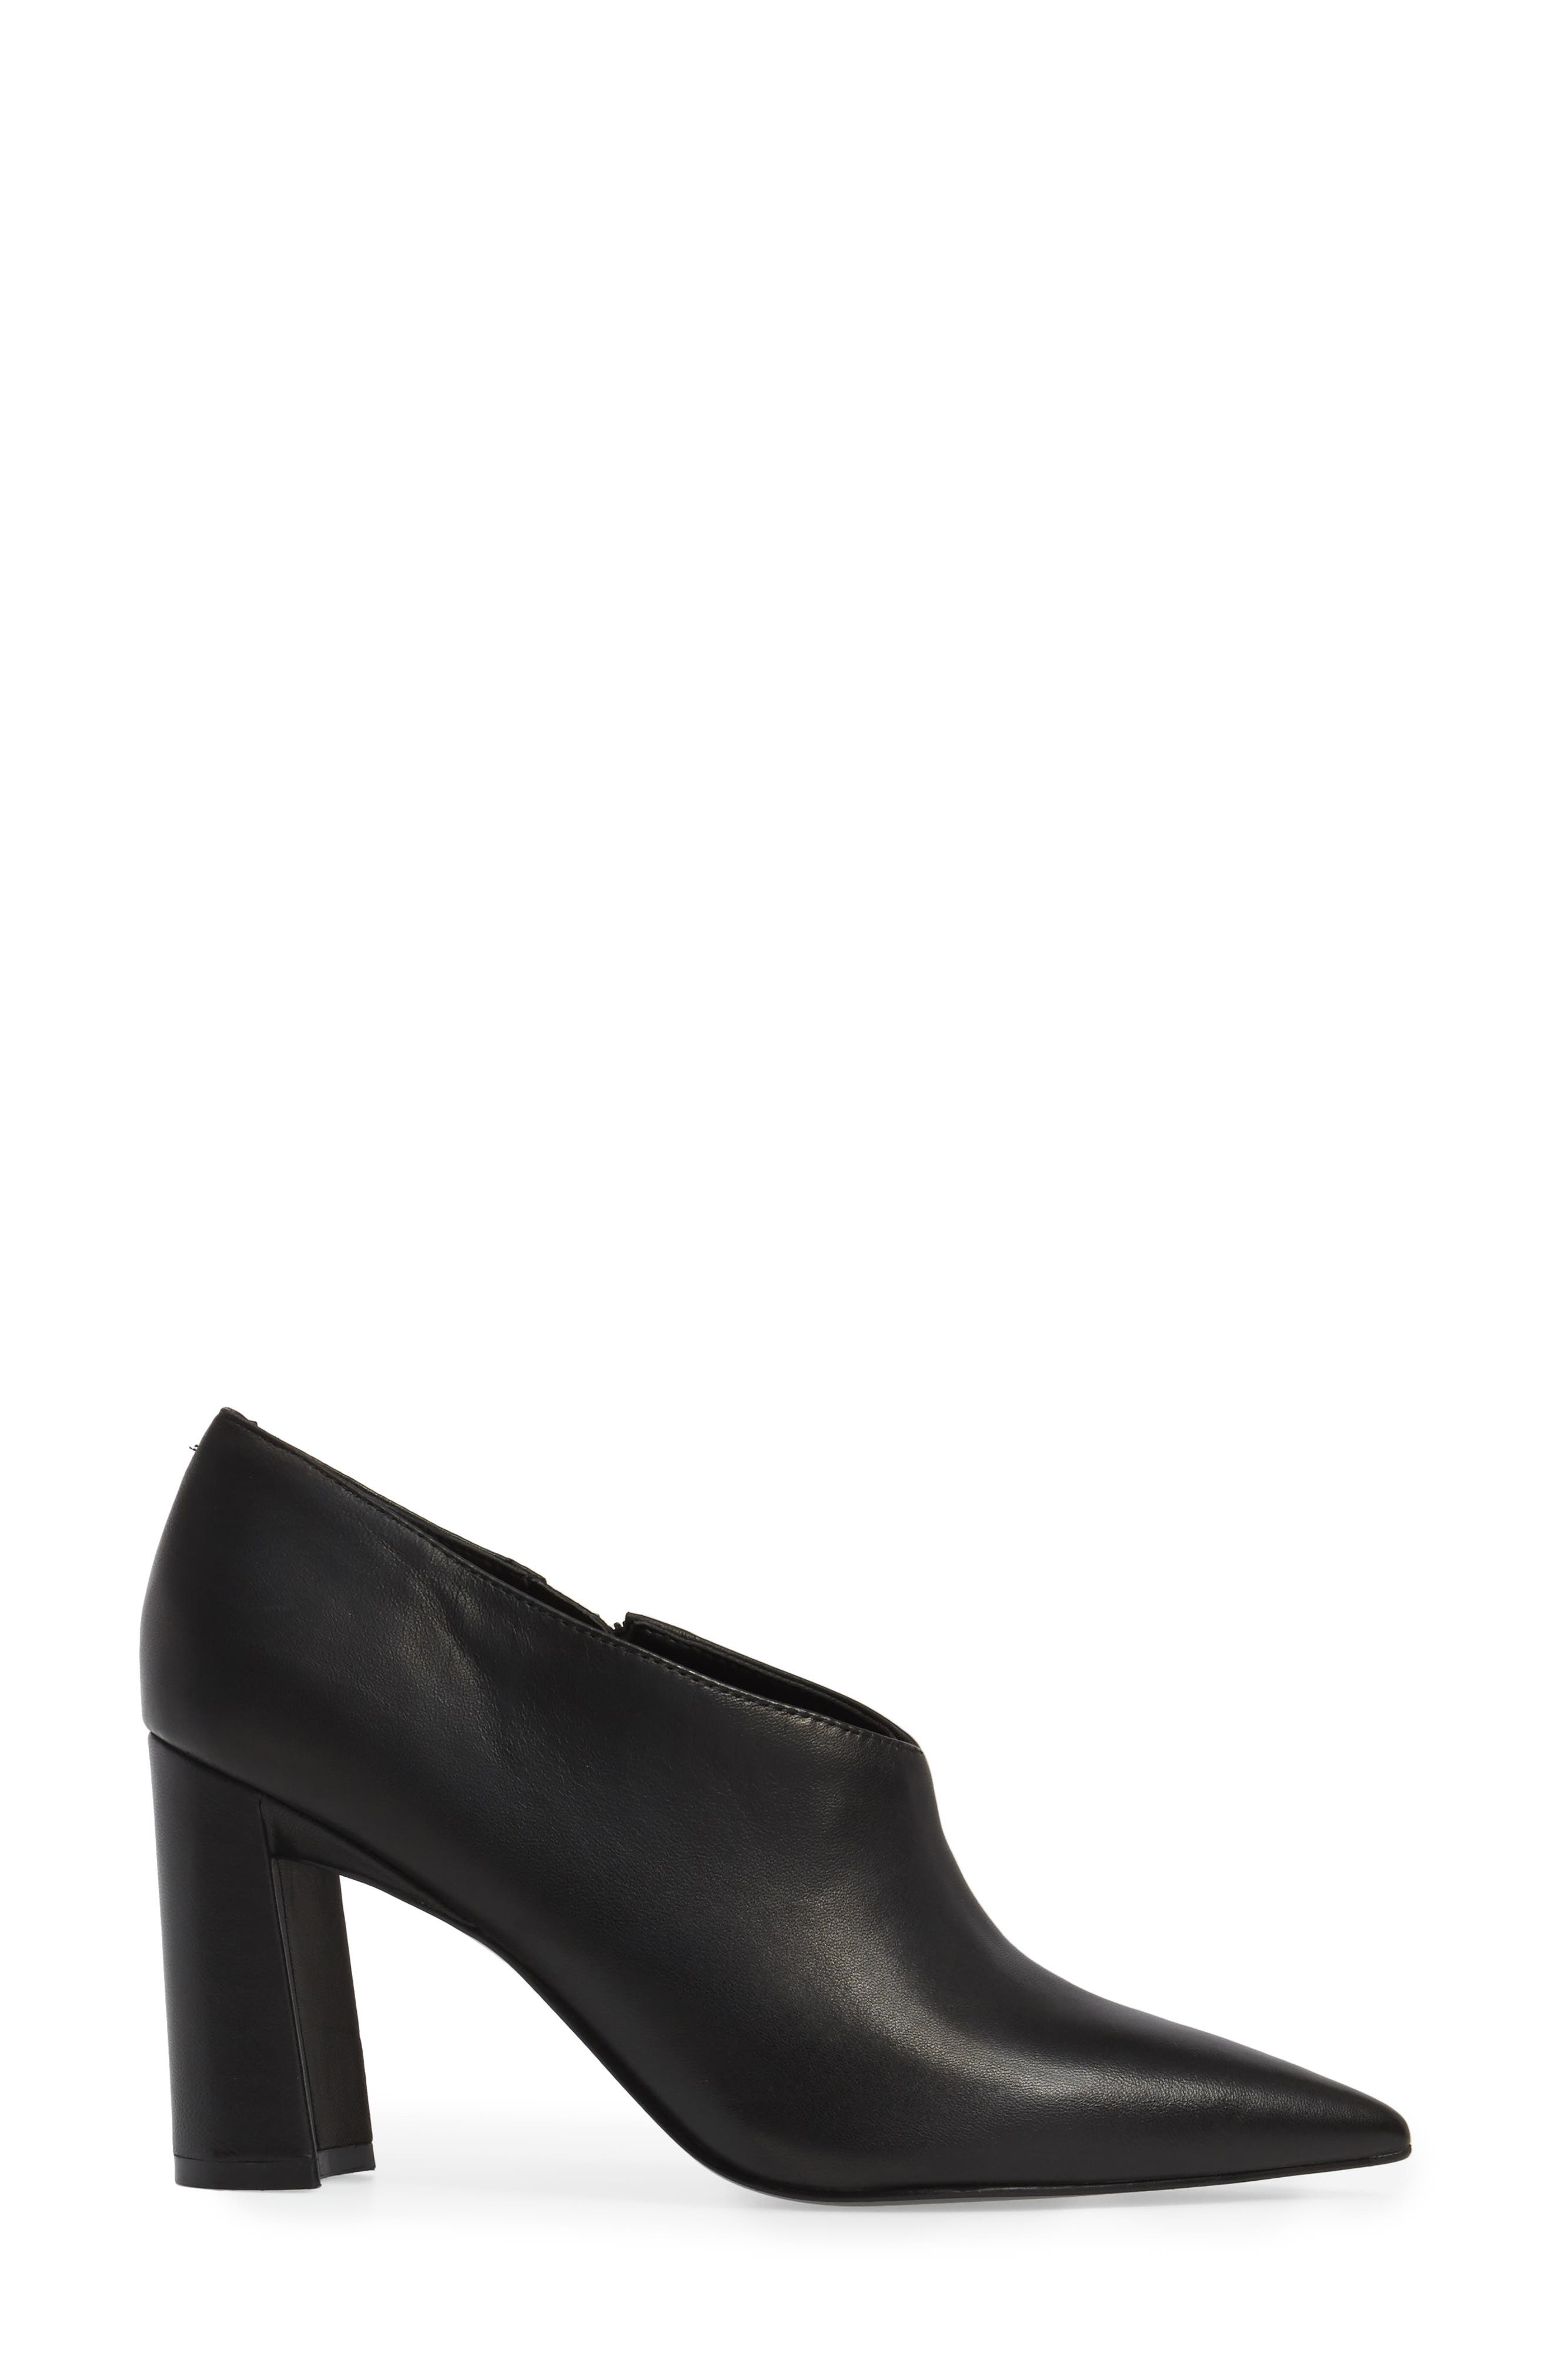 Hoda Pointy Toe Bootie,                             Alternate thumbnail 3, color,                             001